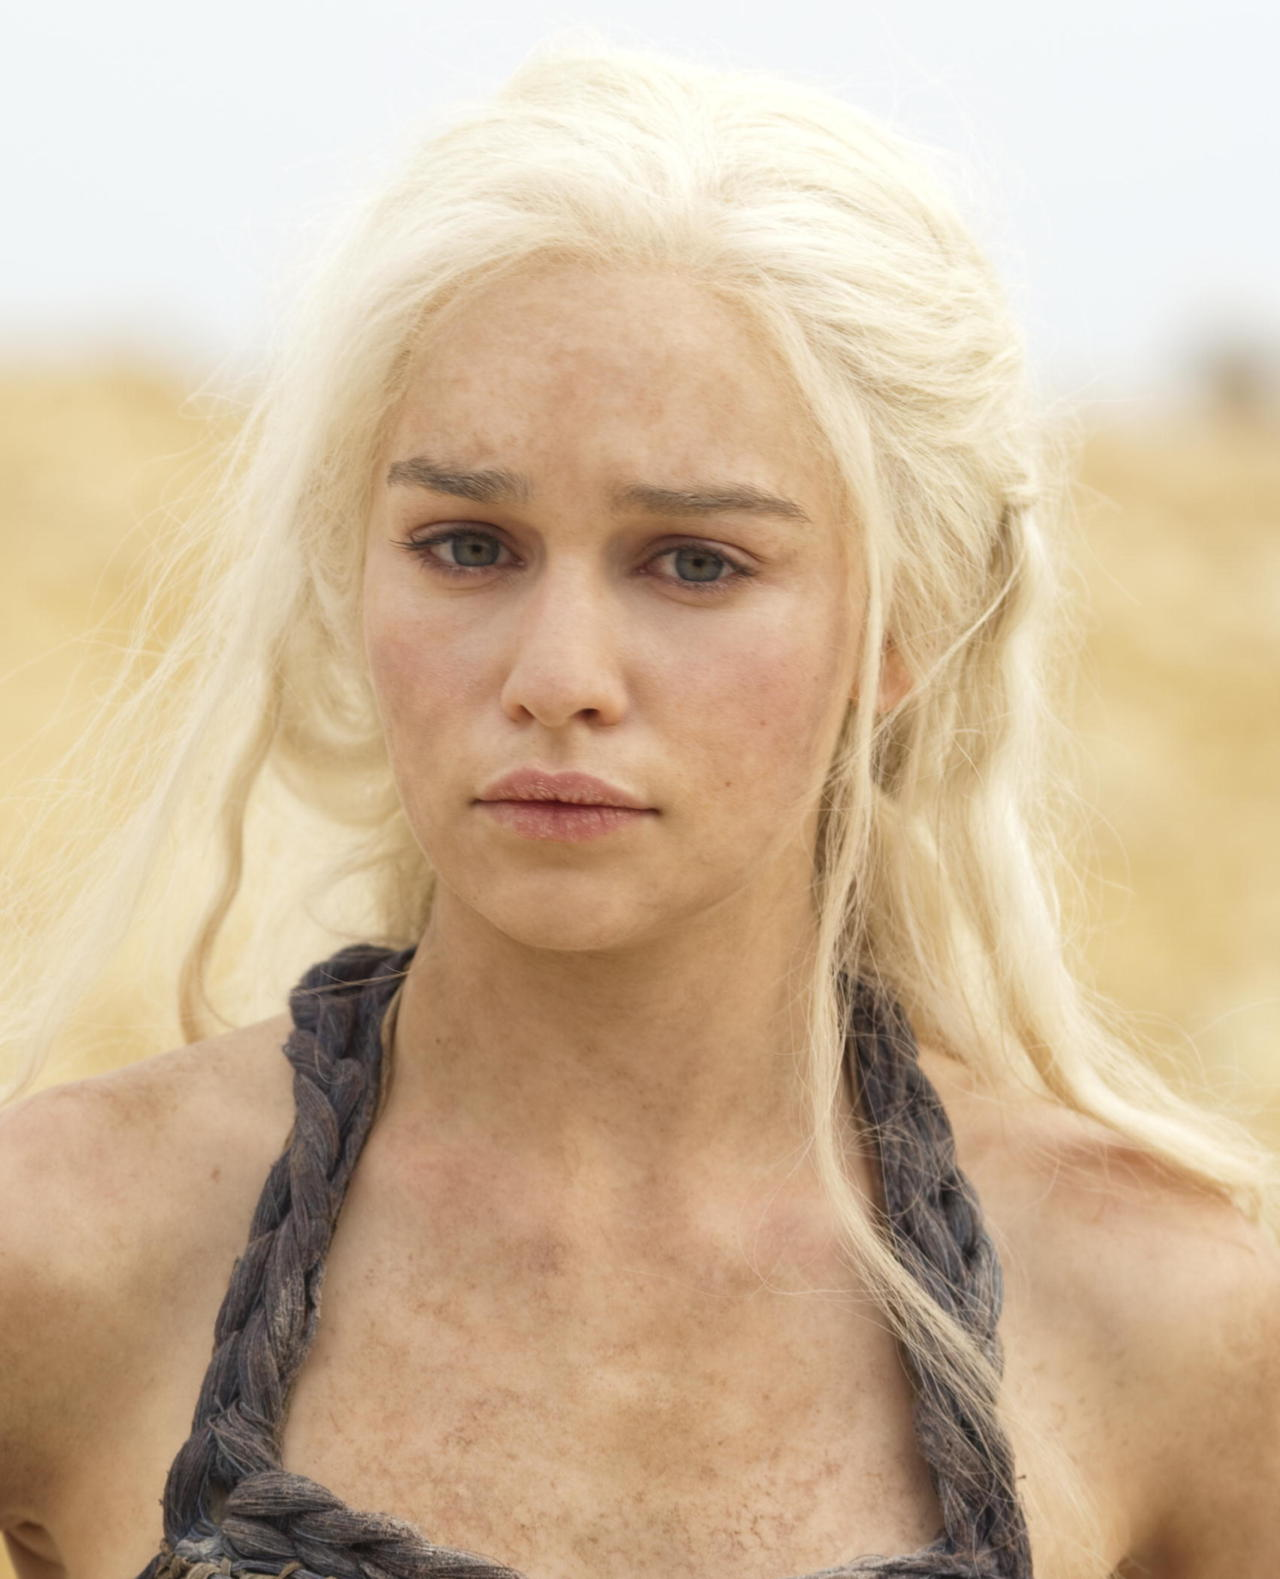 Daenerys Targaryen - Game of Thrones Photo (29950522) - Fanpop